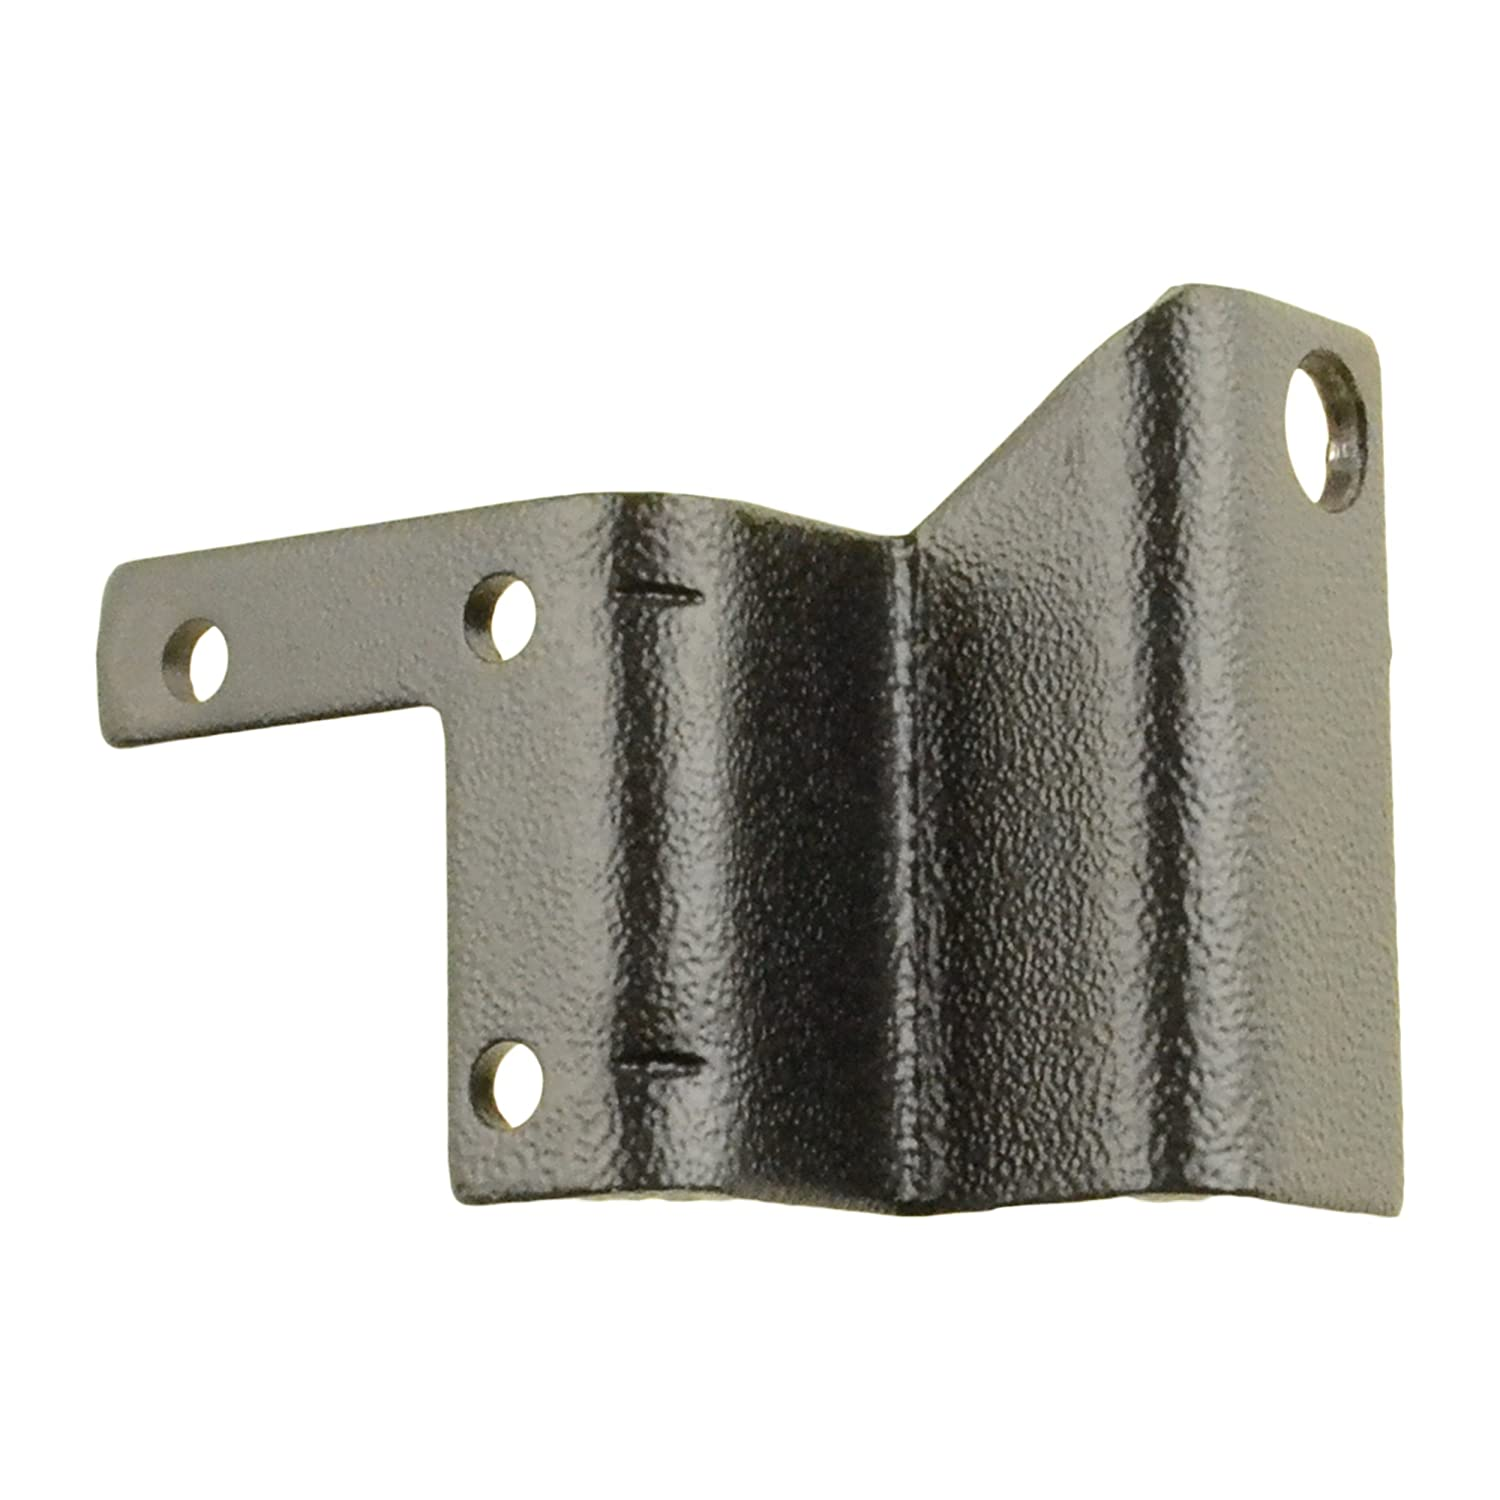 Norcold 618798 Refrigerator Hinge Norcold Inc